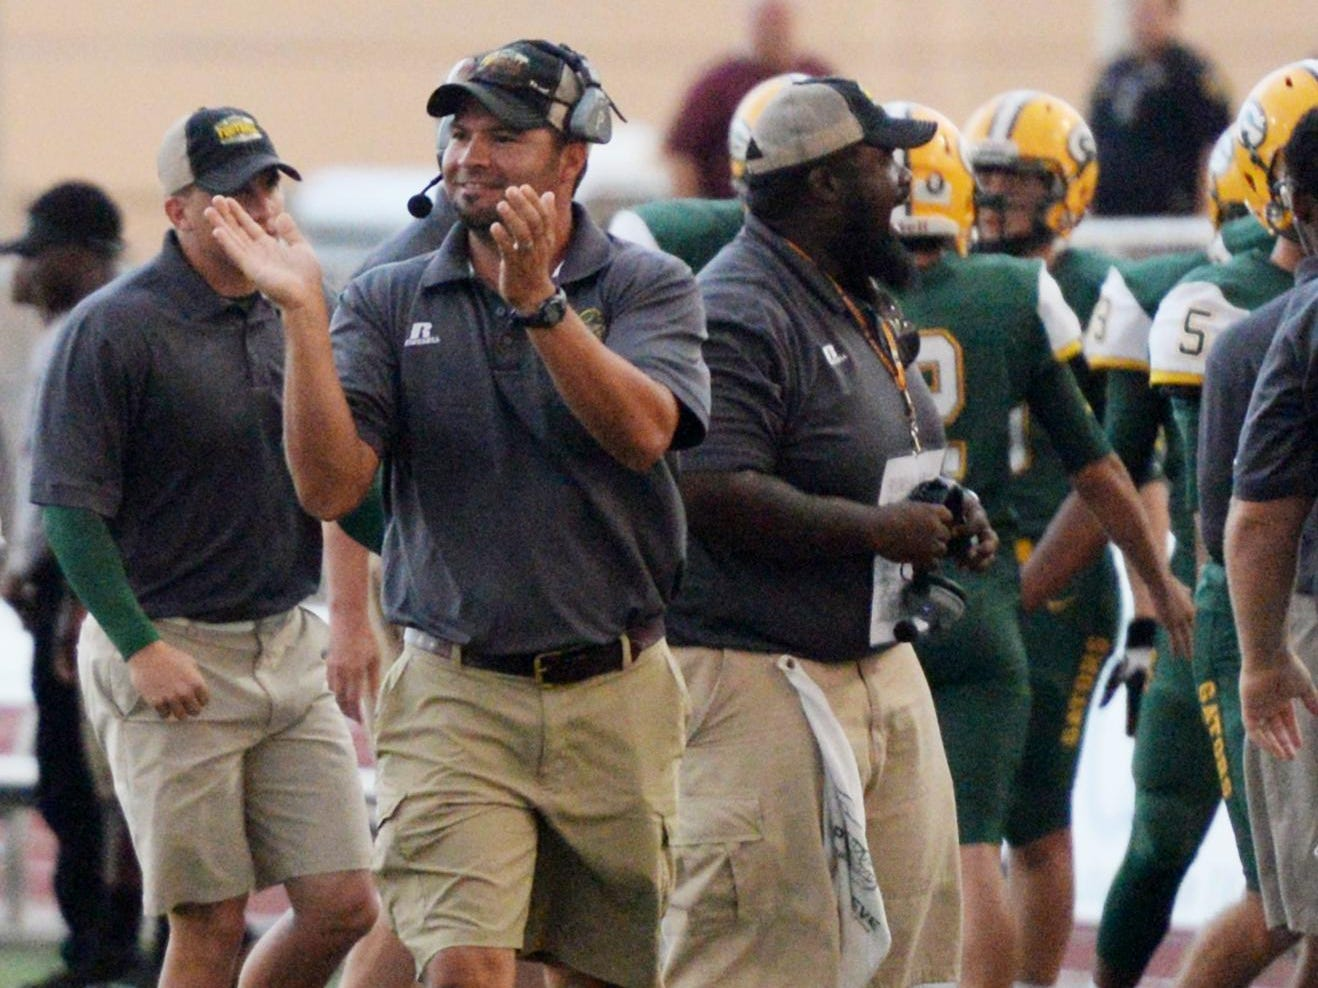 Captain Shreve head coach Bryant Sepulvado (clapping) and the Gators won their second game of the season on Friday.